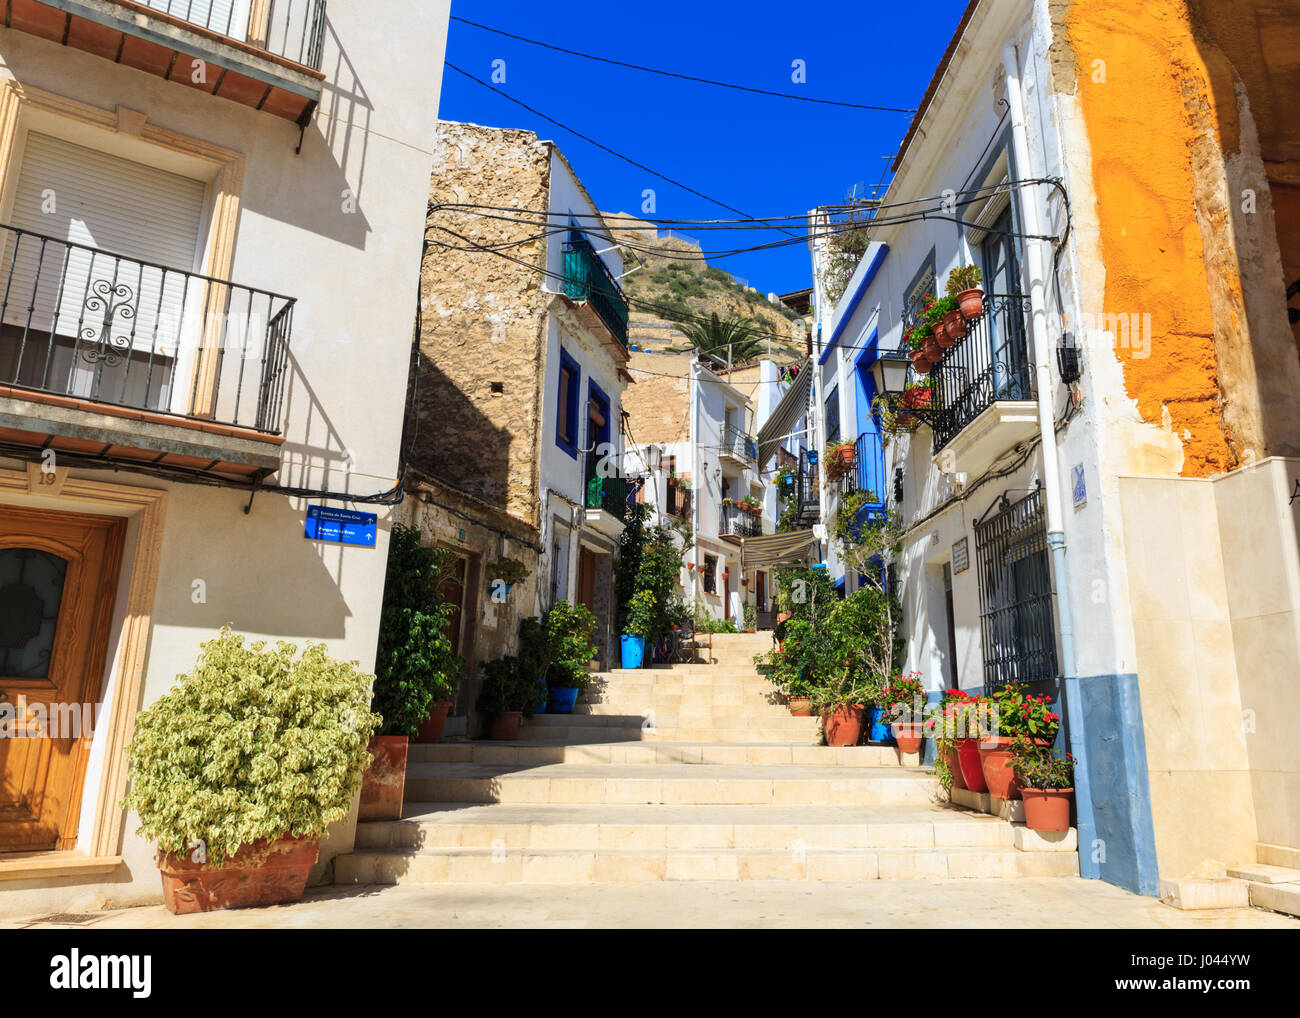 Alicante old town alicante costa blanca spain stock - Stock uno alicante ...